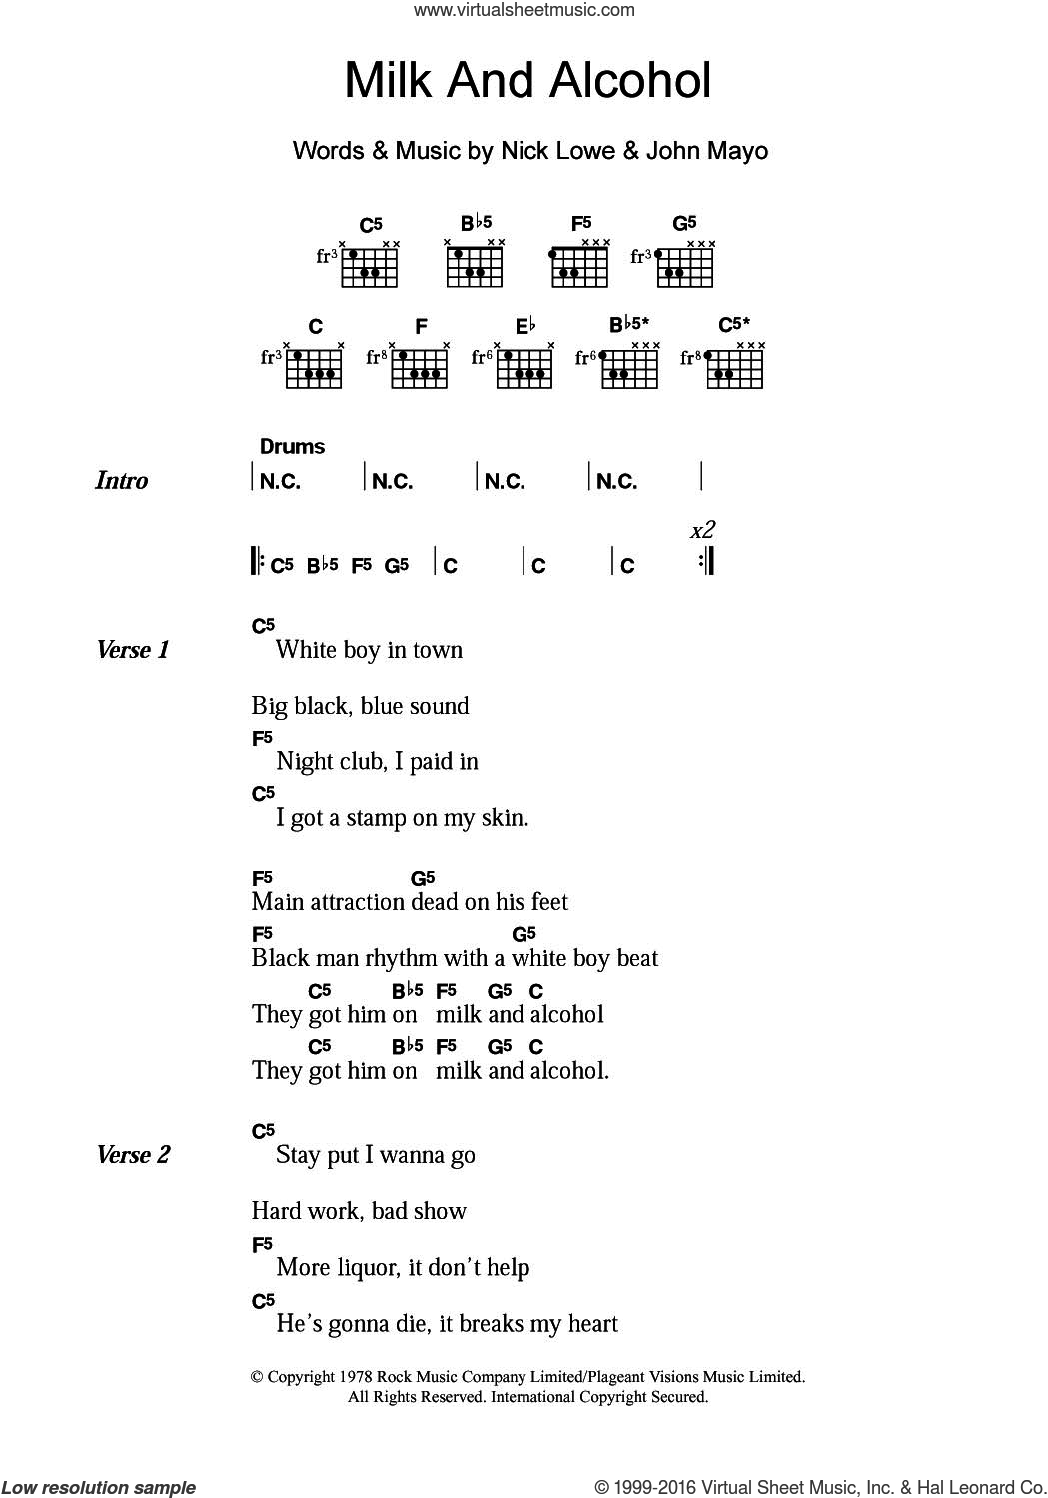 Milk And Alcohol sheet music for guitar (chords) by Dr. Feelgood, John Mayo and Nick Lowe, intermediate skill level